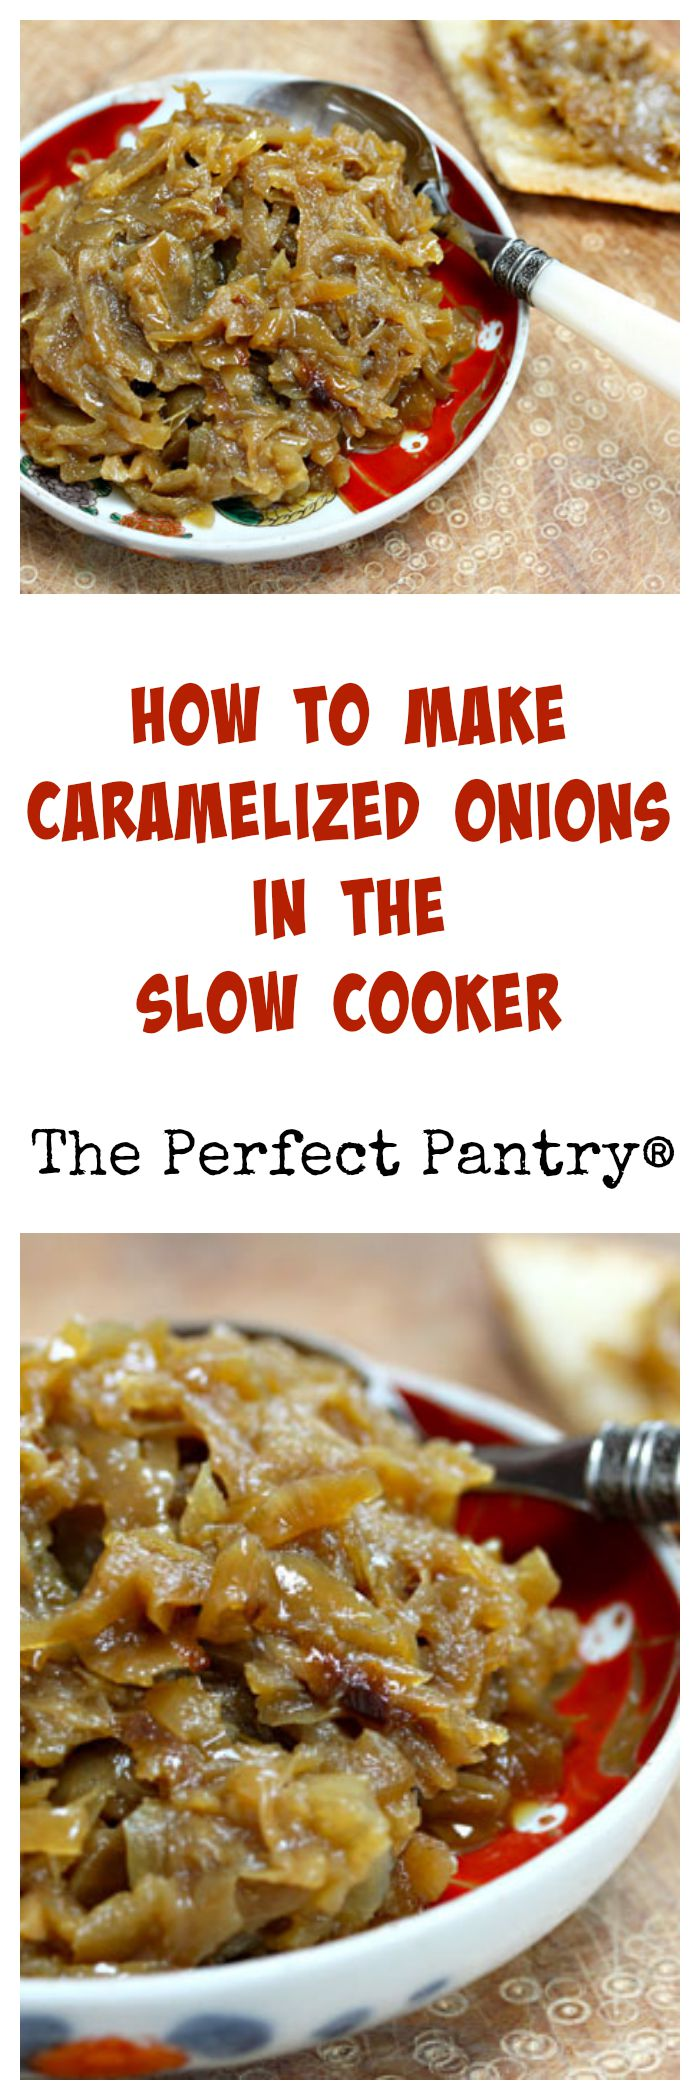 It's so easy to make caramelized onions in the crockpot!